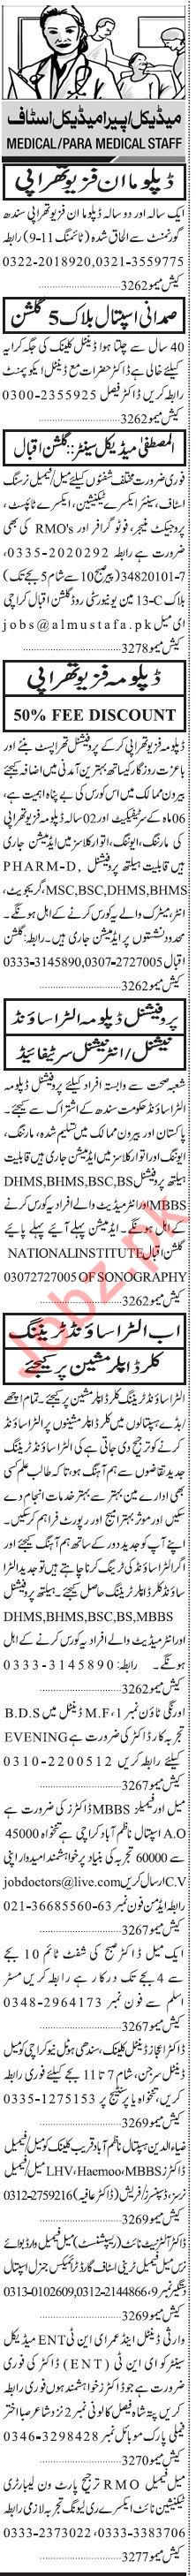 Jang Sunday Classified Ads 15th March 2020 for Medical Staff